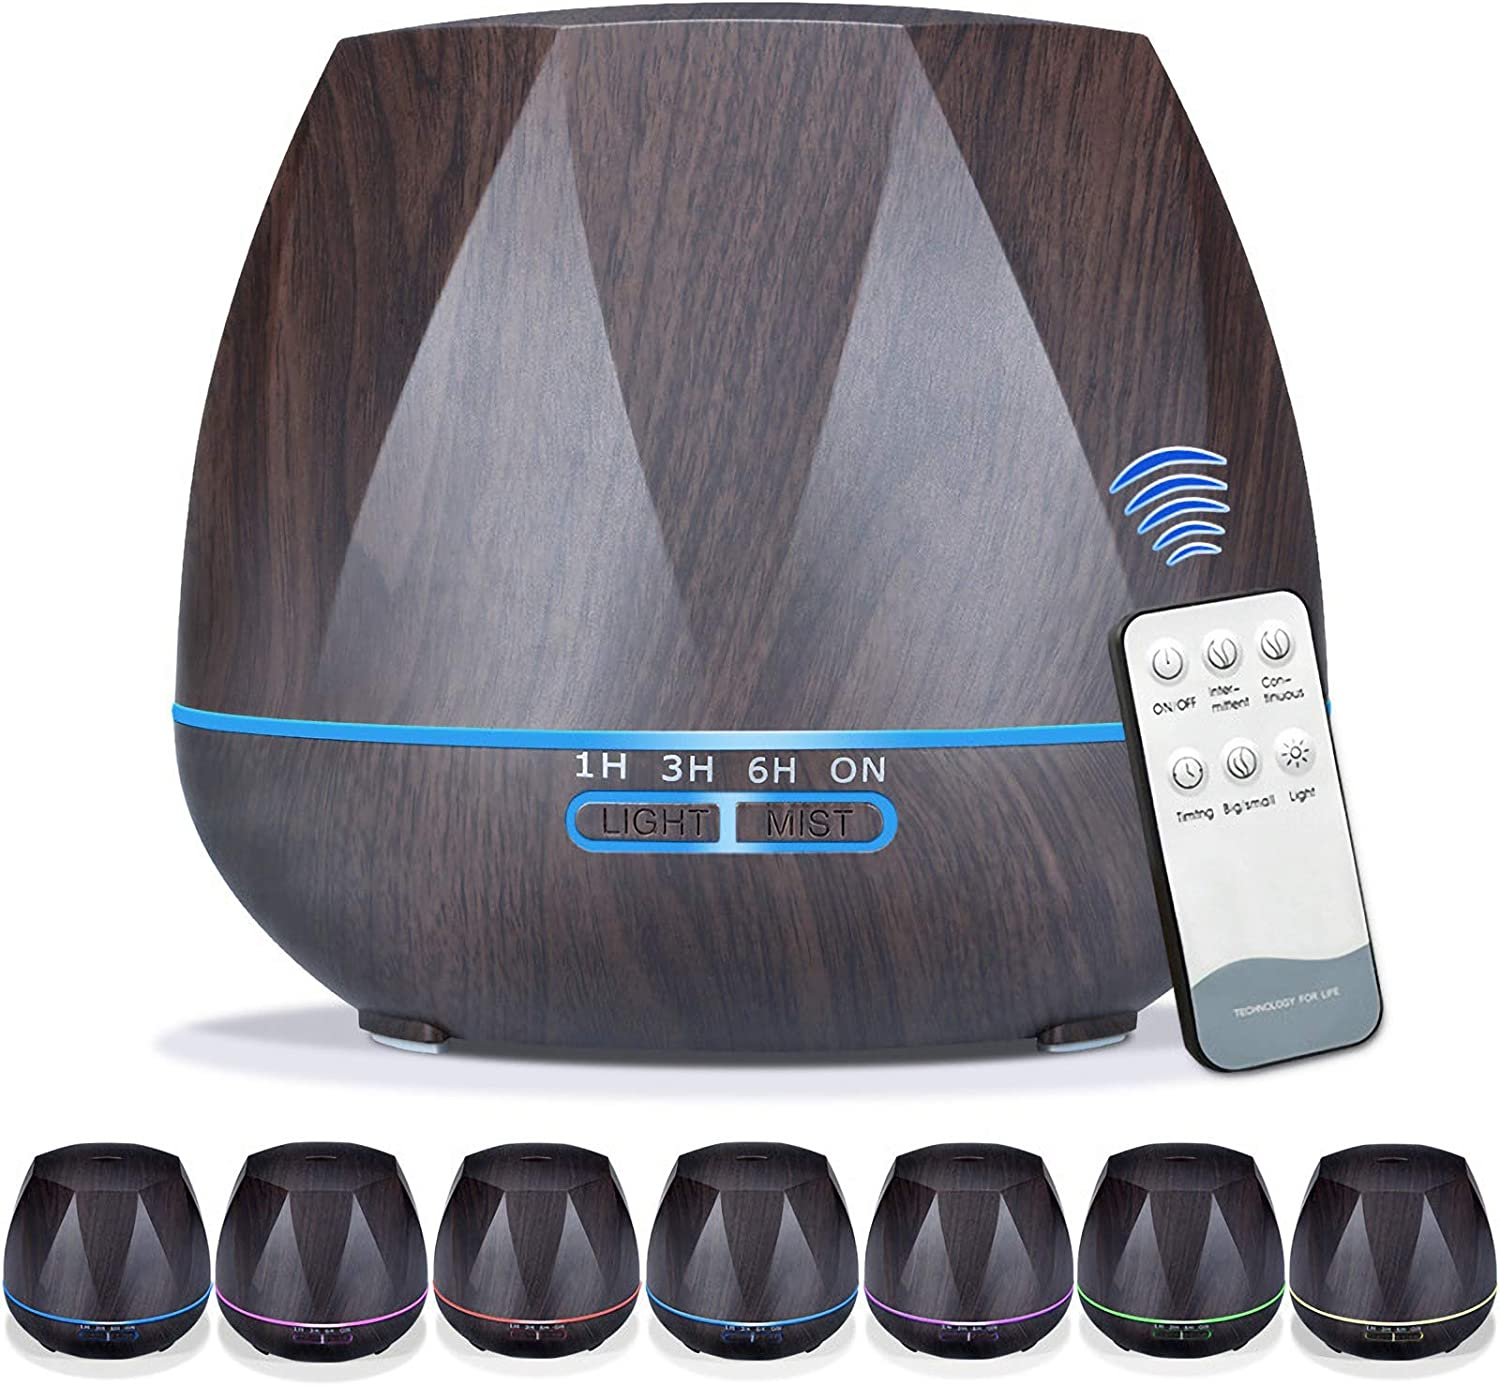 Ayrio Essential Oil Diffusers, 550ml Ultrasonic Cool Mist Aromatherapy Diffuser Air Humidifier with Remote Control Timer and 7 Colourful LED Lights